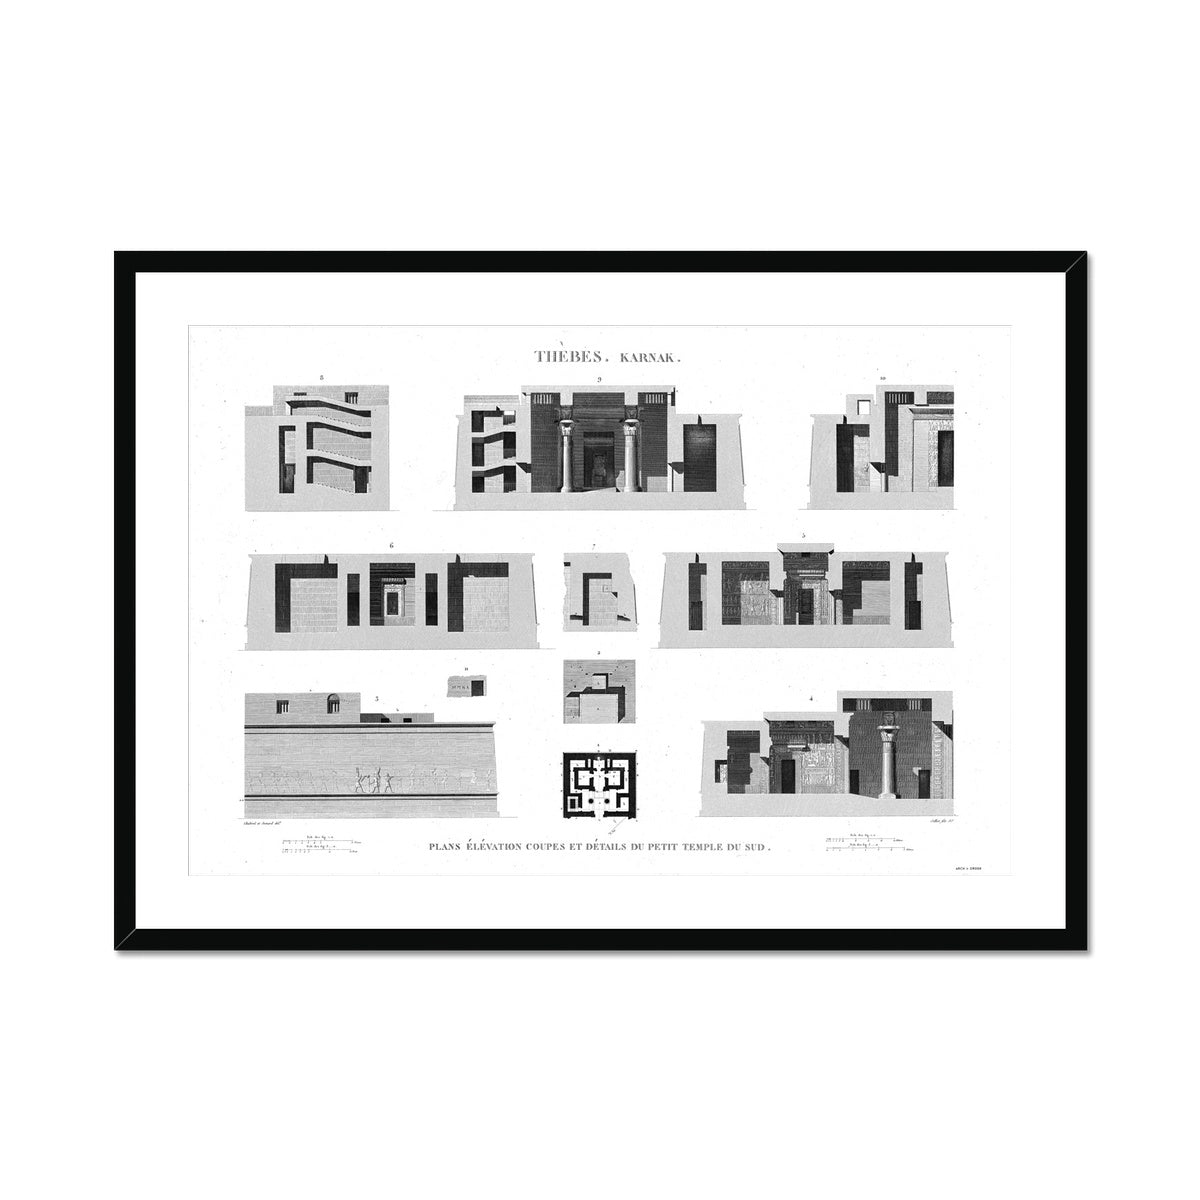 Sections of the Small Southern Temple - Karnak - Thebes Egypt -  Framed & Mounted Print